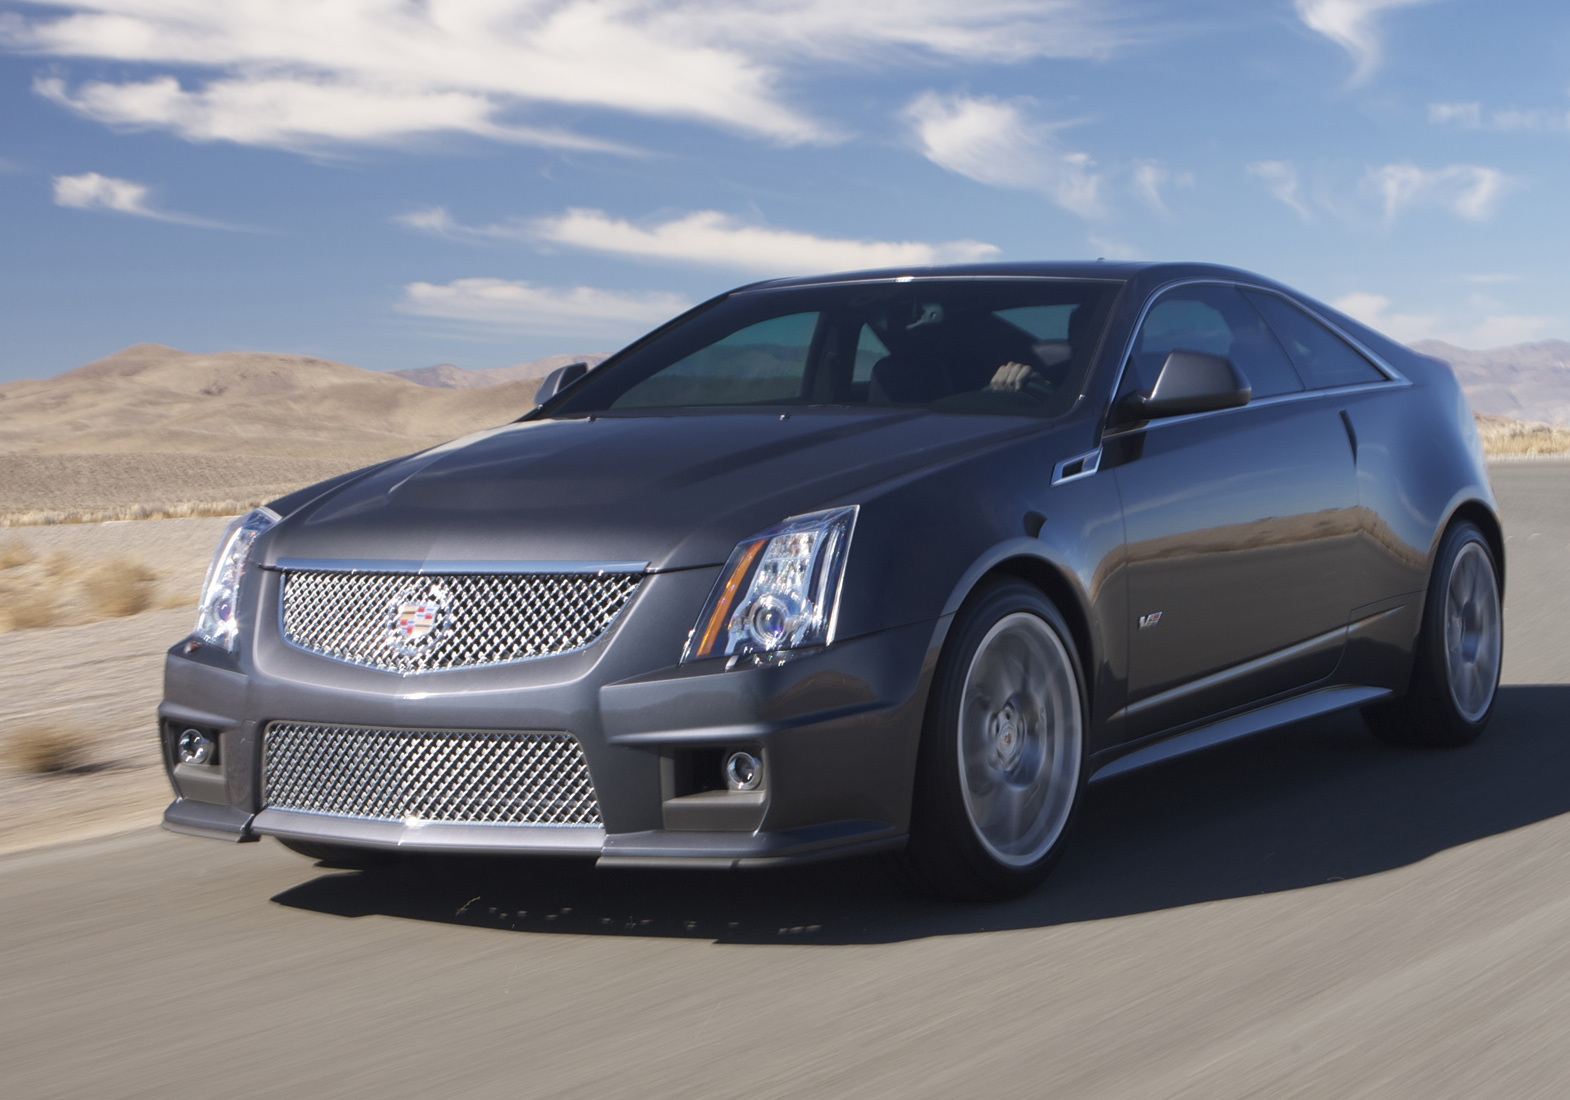 2014 cadillac cts v coupe current models drive away 2day. Black Bedroom Furniture Sets. Home Design Ideas